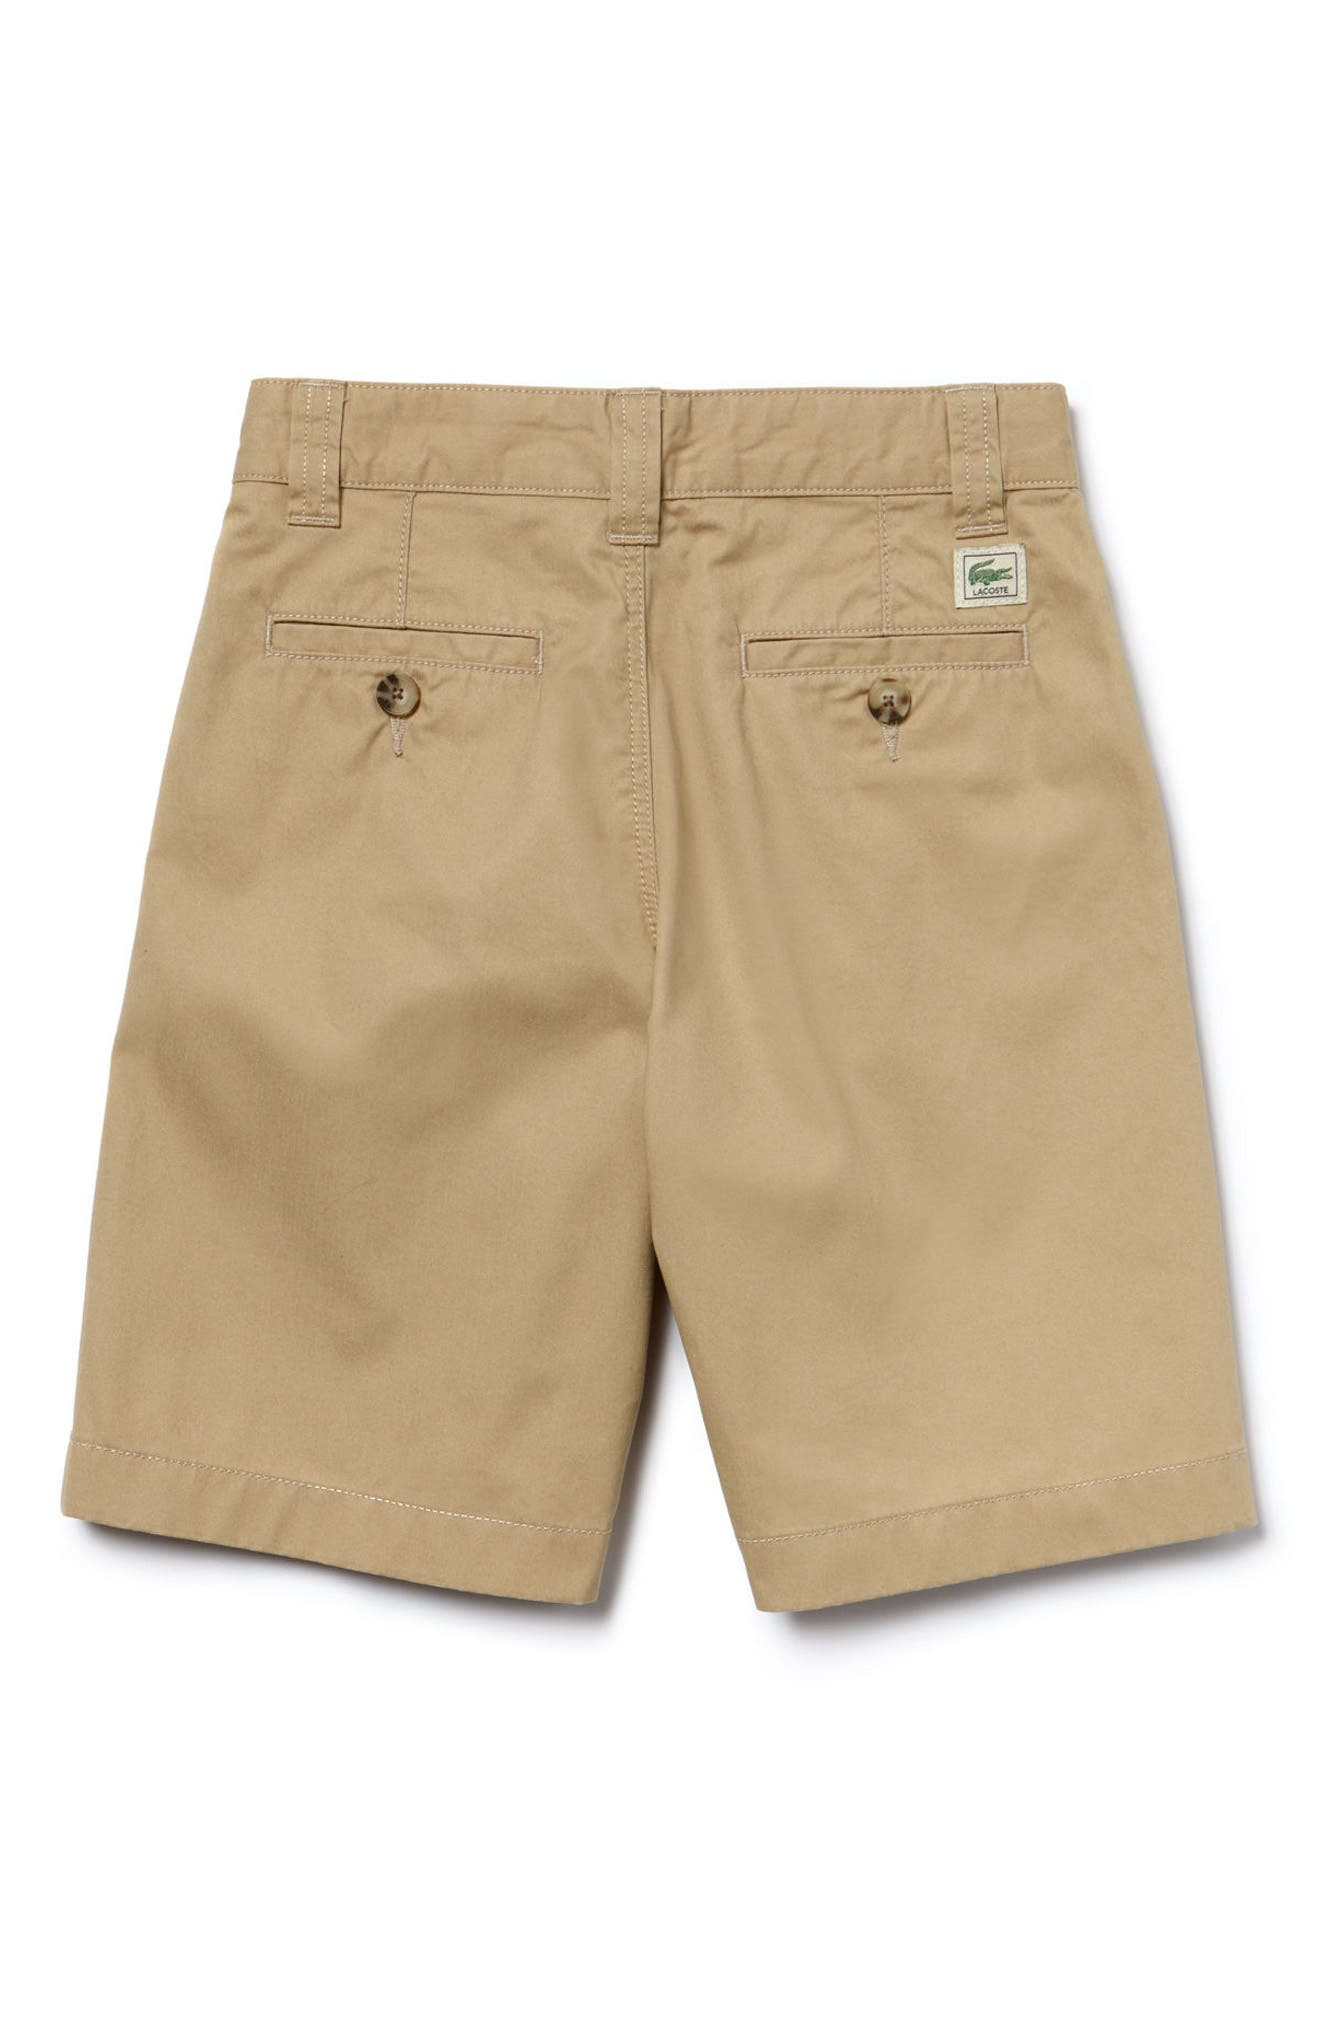 Classic Bermuda Shorts,                             Alternate thumbnail 2, color,                             200